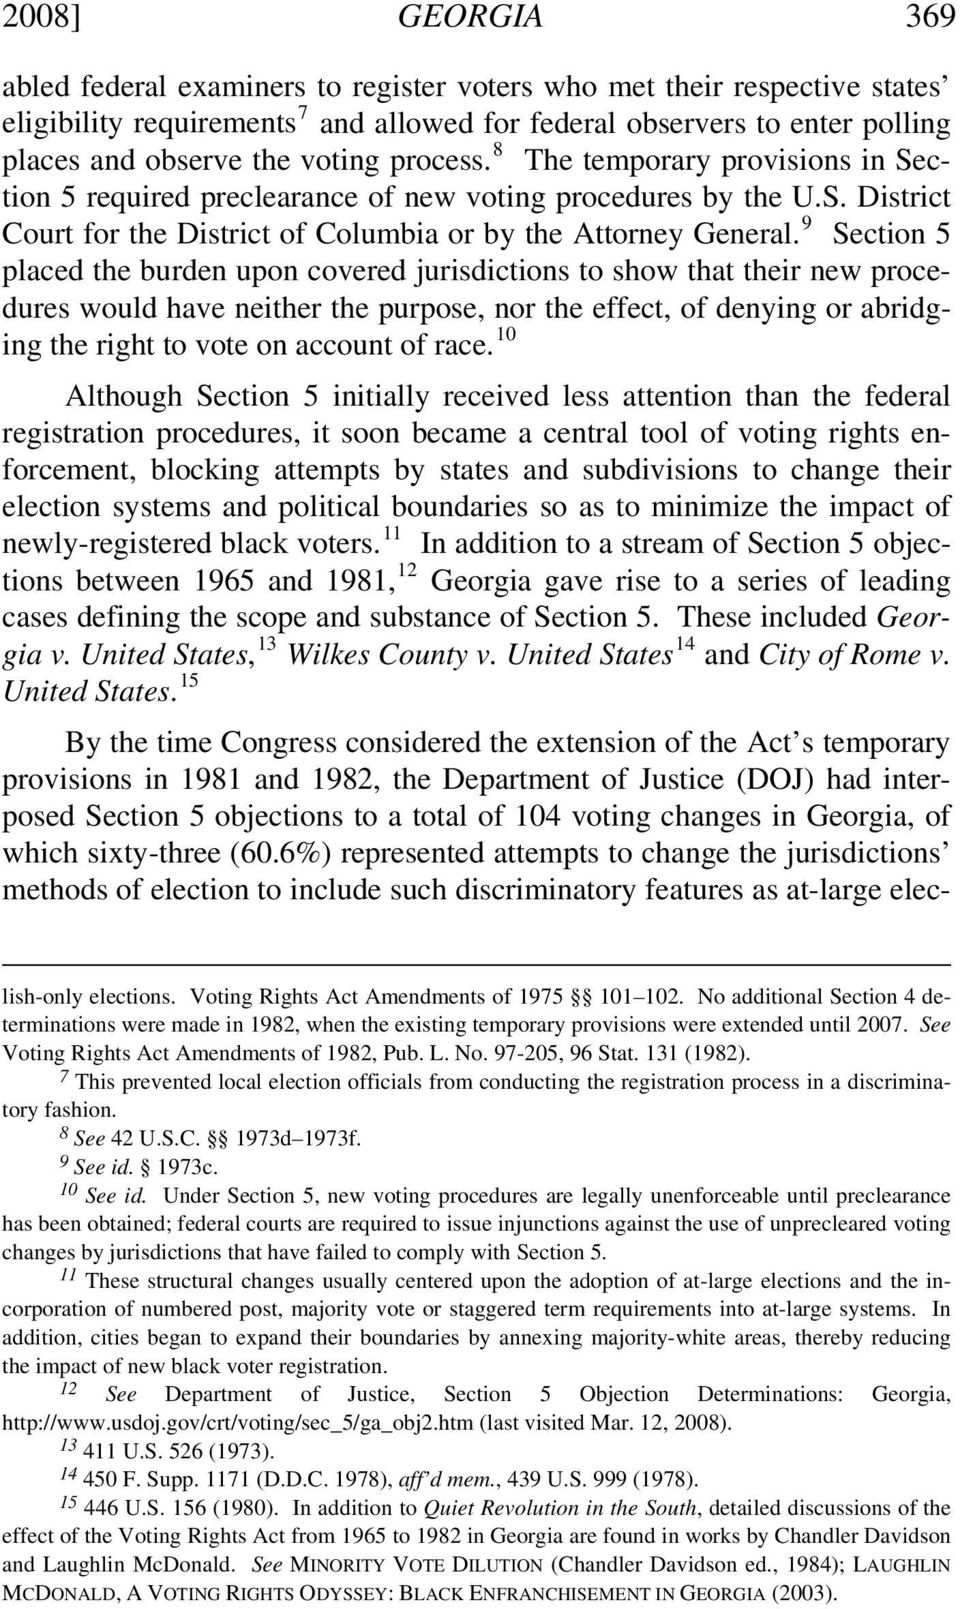 9 Section 5 placed the burden upon covered jurisdictions to show that their new procedures would have neither the purpose, nor the effect, of denying or abridging the right to vote on account of race.